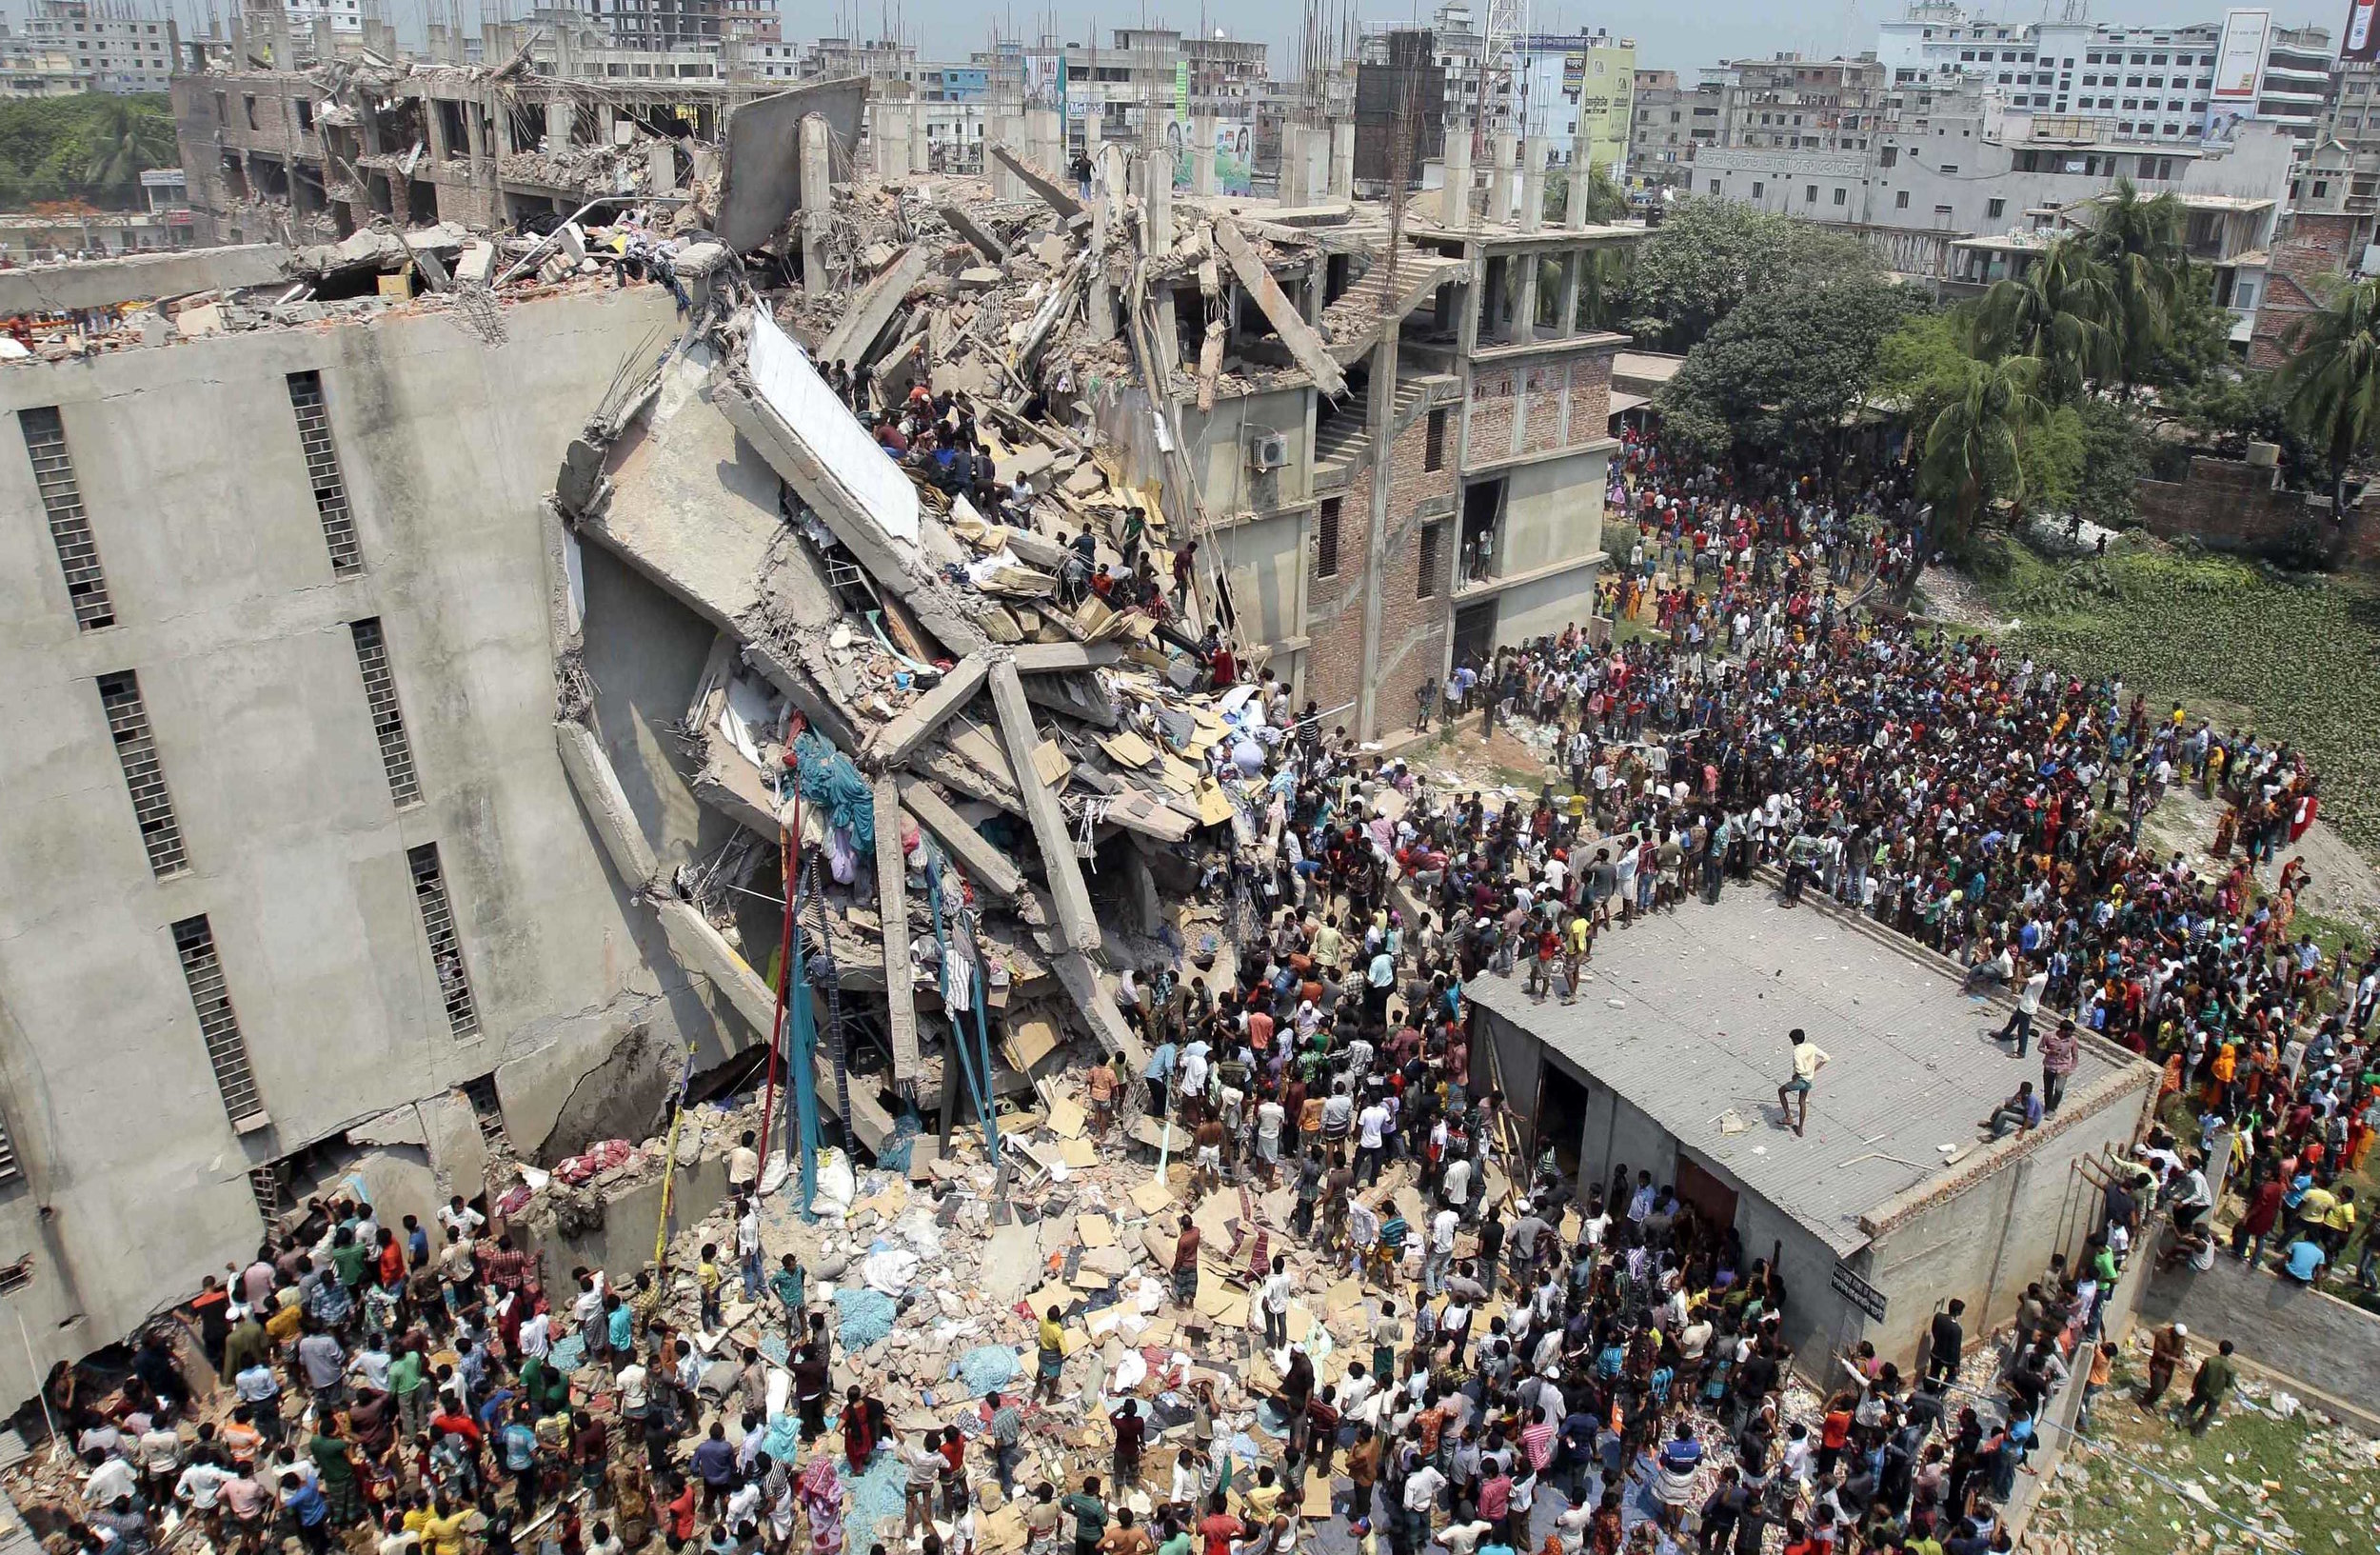 On 24 April 2013, Rana Plaza building in Bangladesh containing five clothing manufacturing factories, collapsed to the ground taking the lives of 1,333 people and injuring 2500.